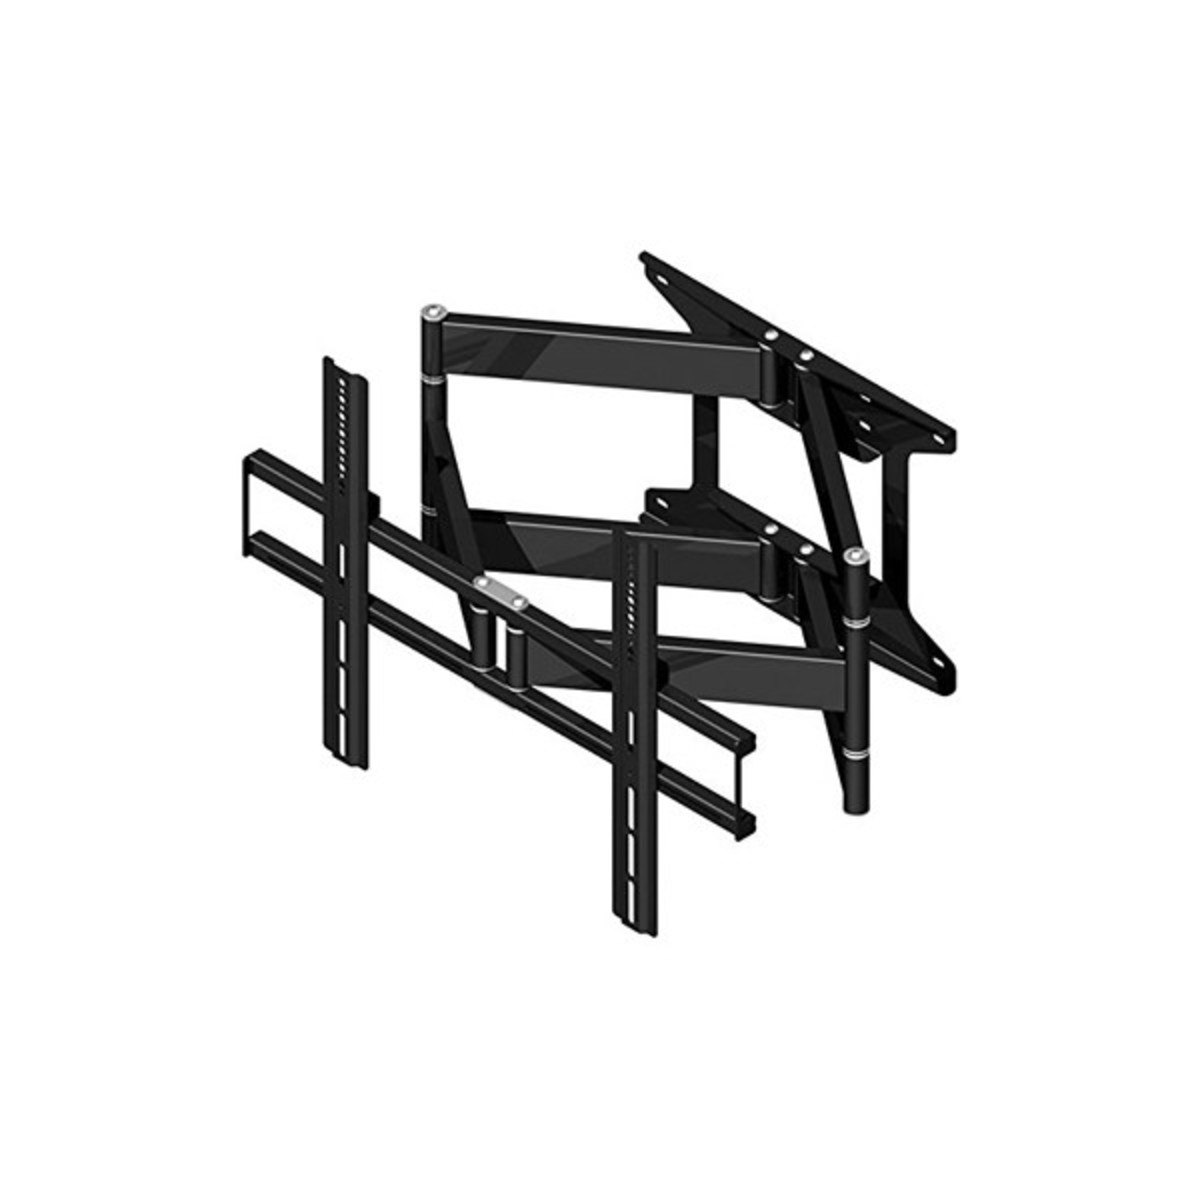 Flexson Cantilever TV Mount for SONOS PLAYBAR- Black (Single). Loading zoom 695d953040b0a